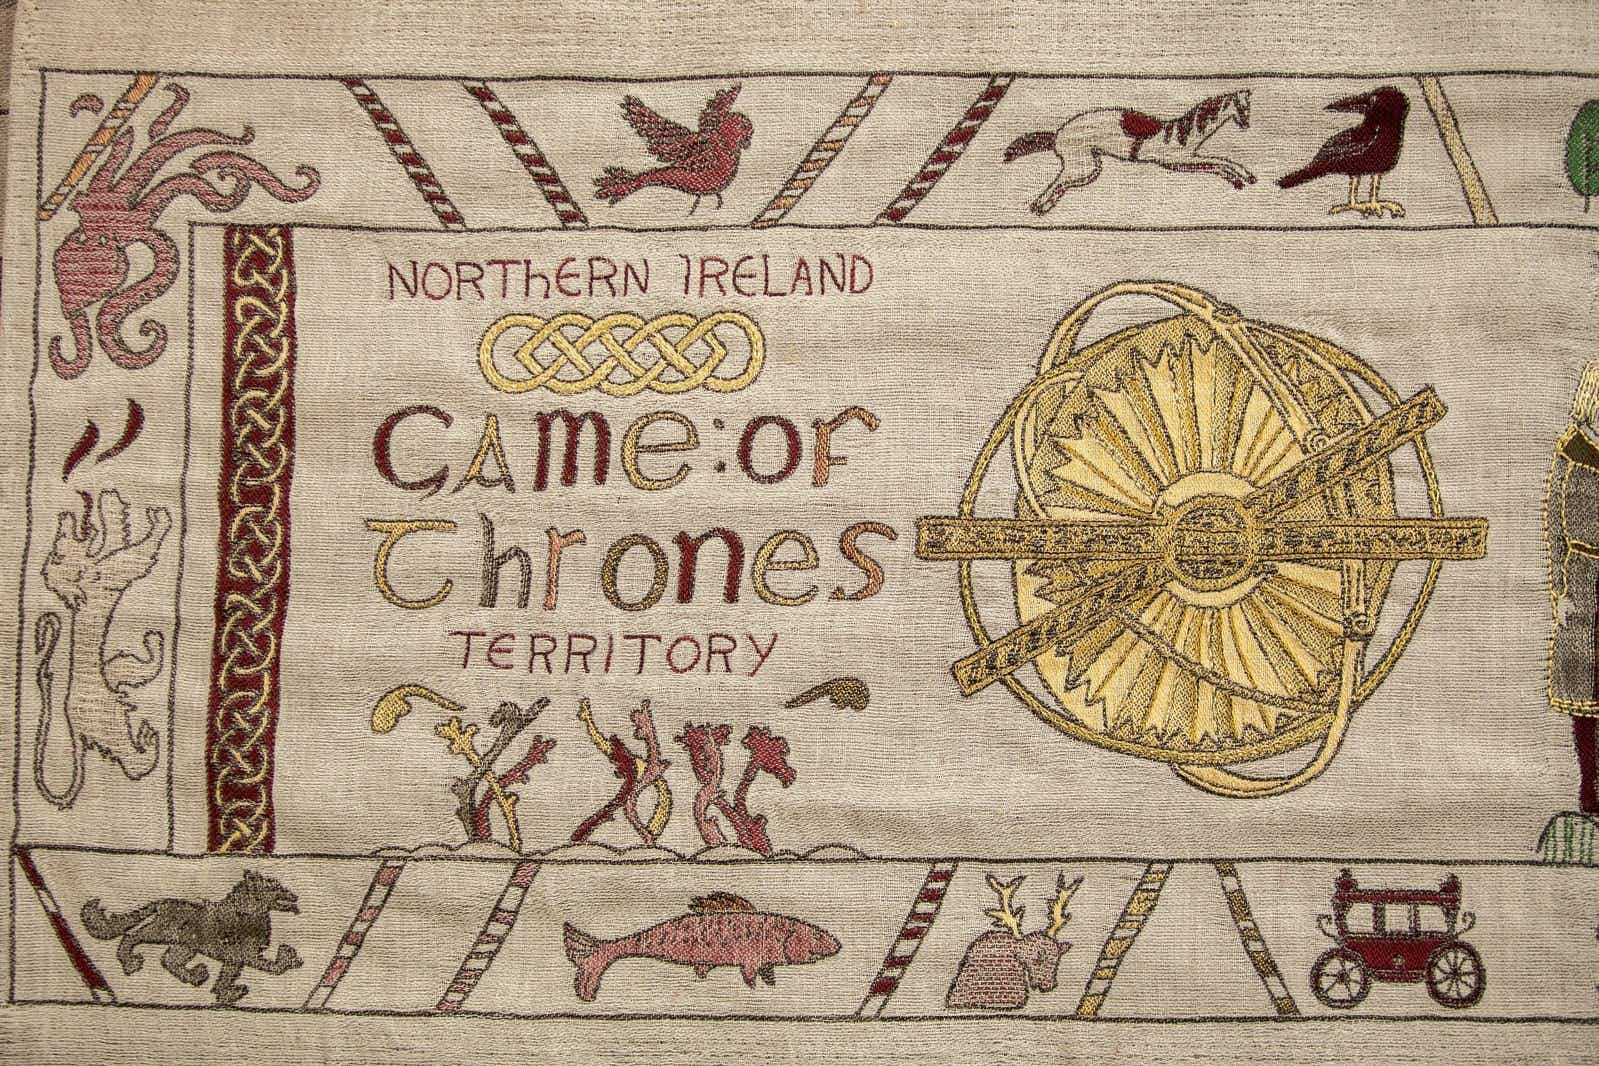 The Game of Thrones plot has been recreated in a spectacular Bayeux-style tapestry